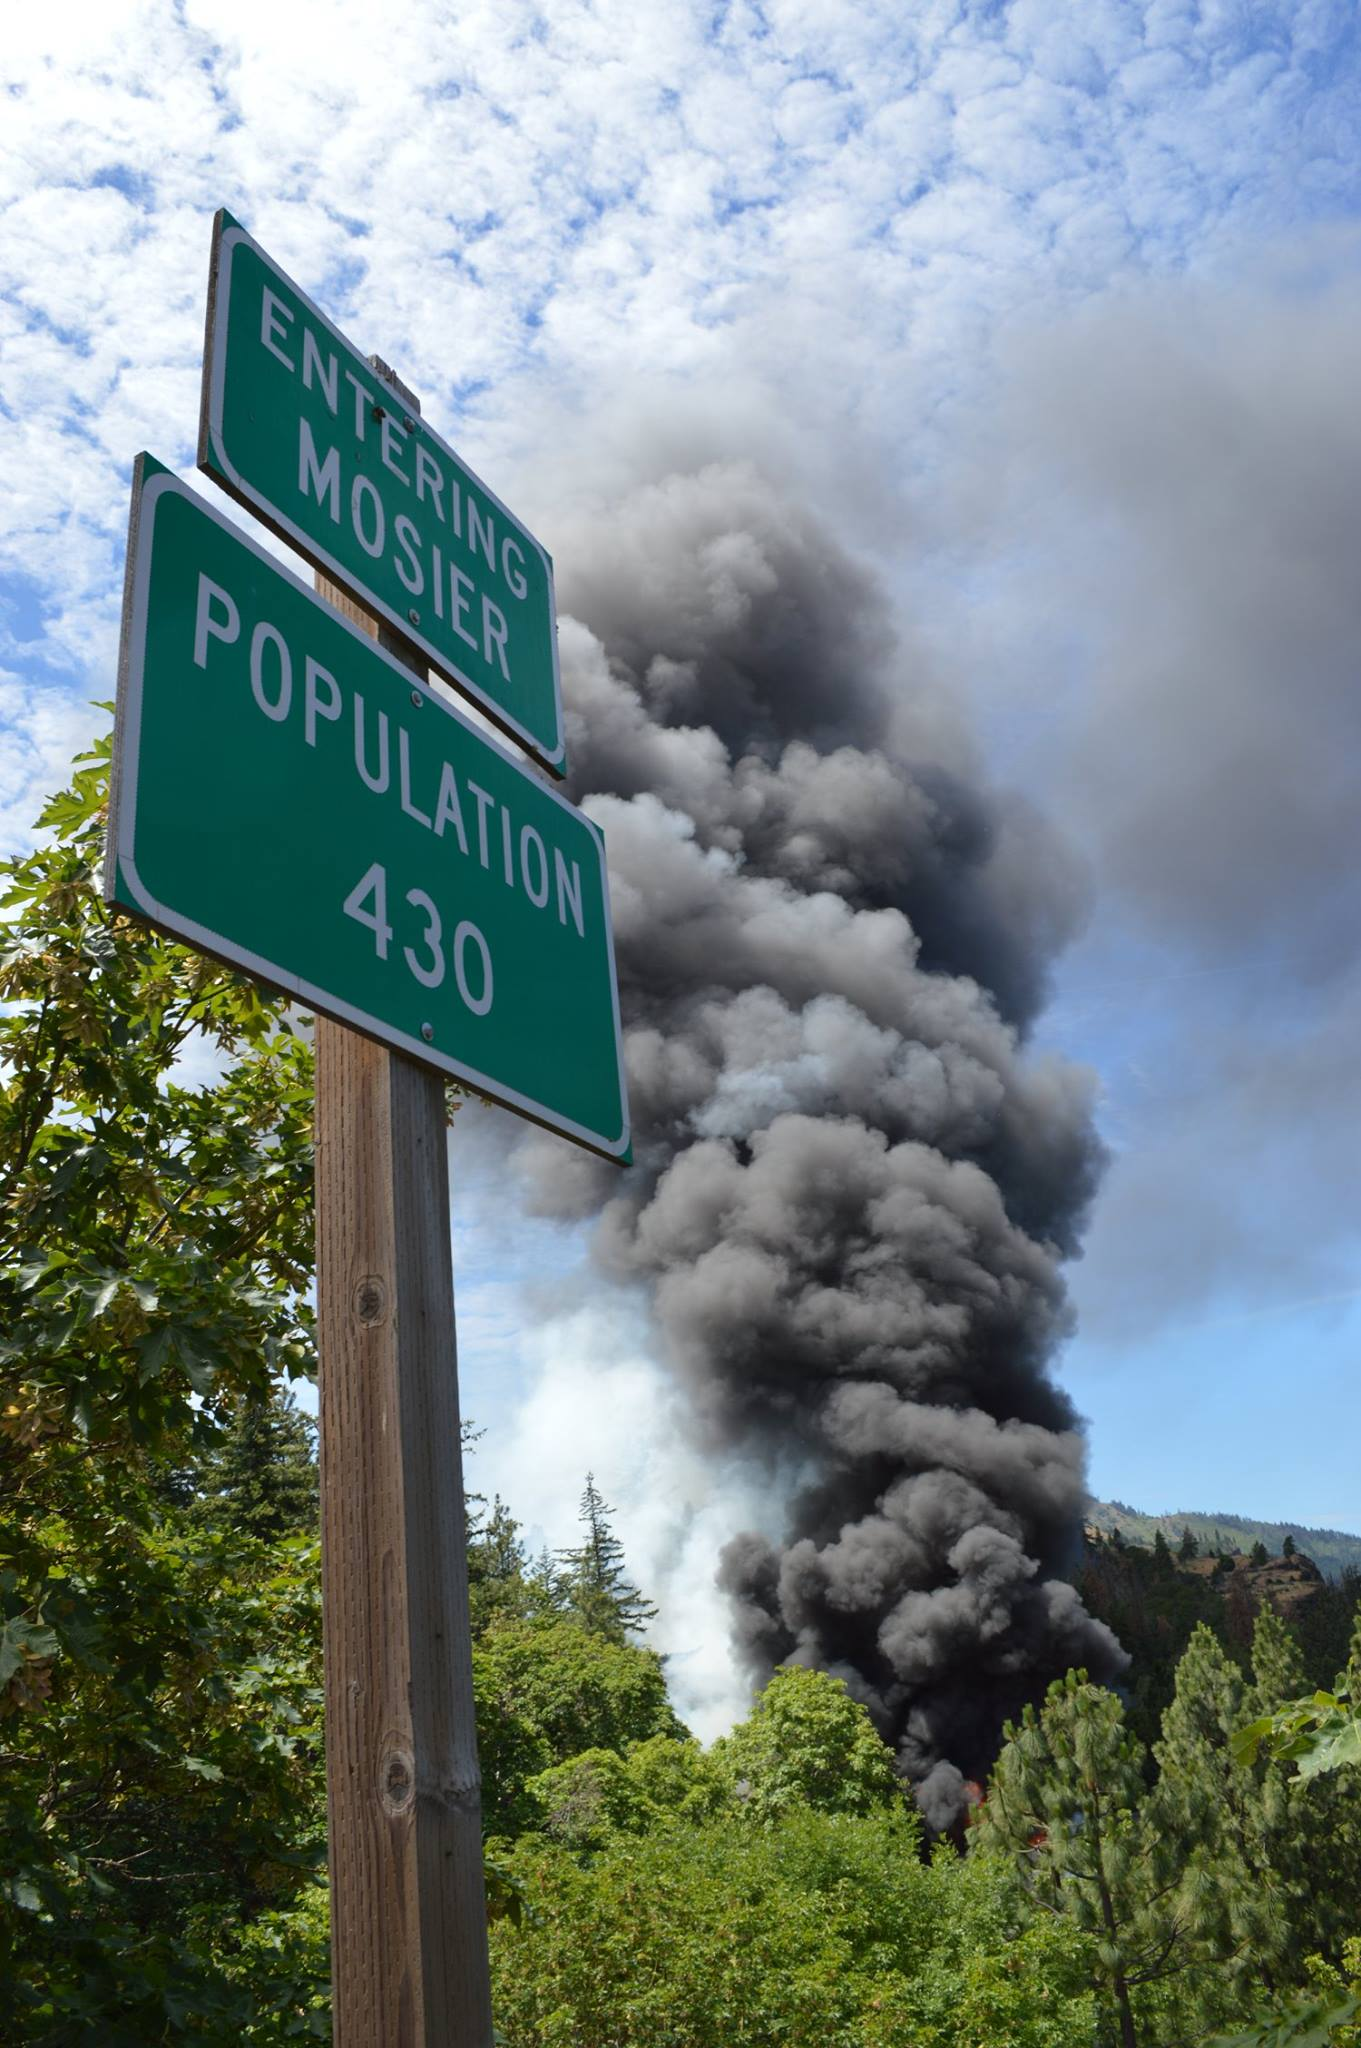 Oil train derailment, Mosier, June 3, 2016.      Photo: Patrick Mulville, Hood River News